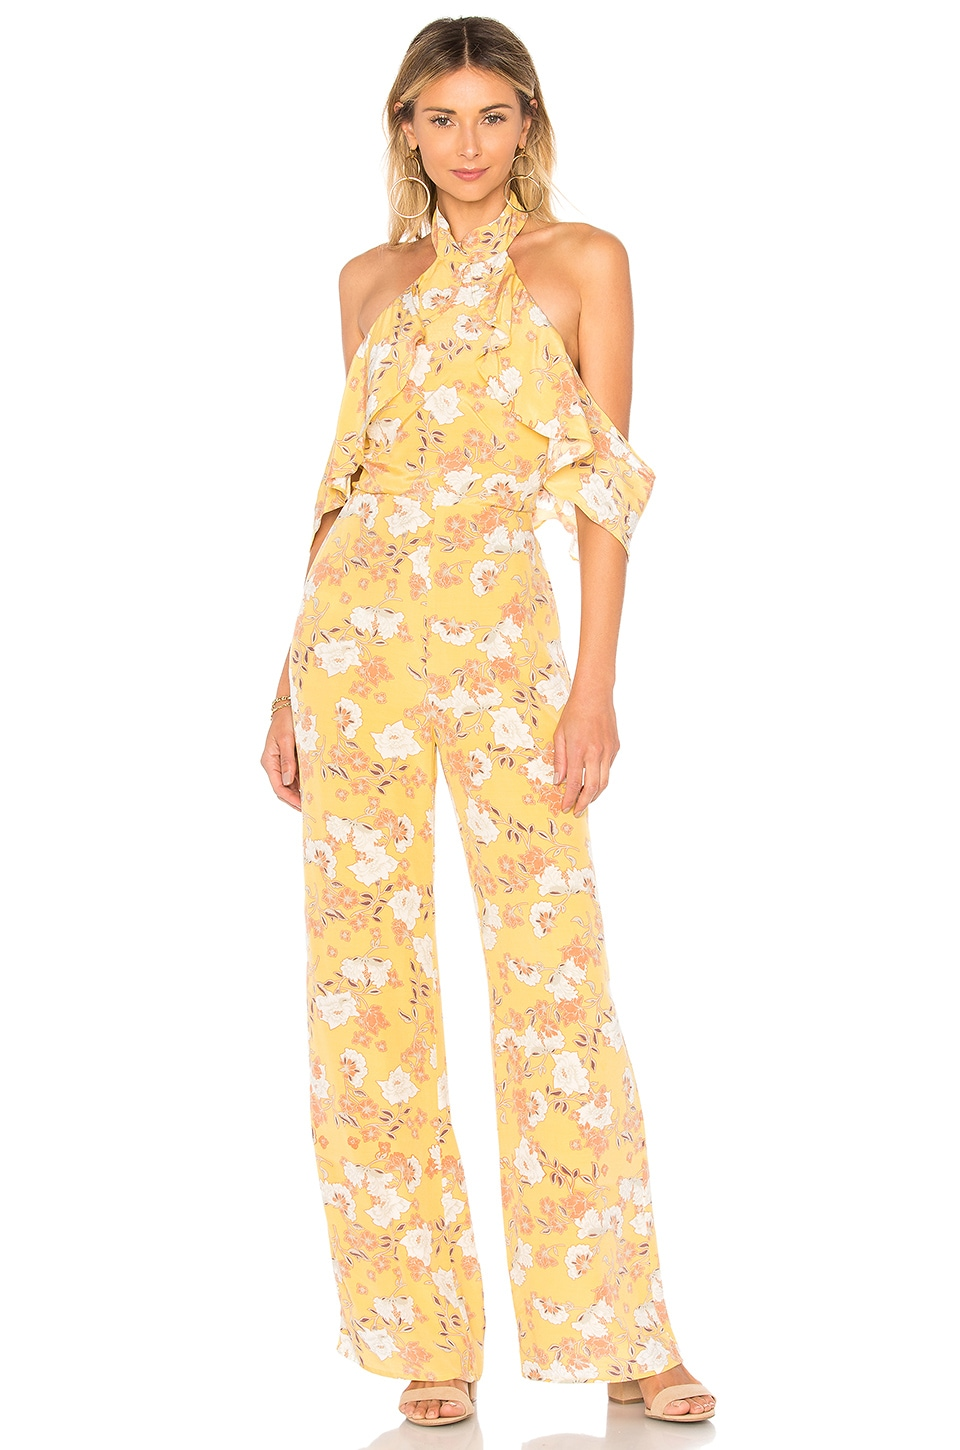 ale by alessandra x REVOLVE Matilde Jumpsuit in Marigold